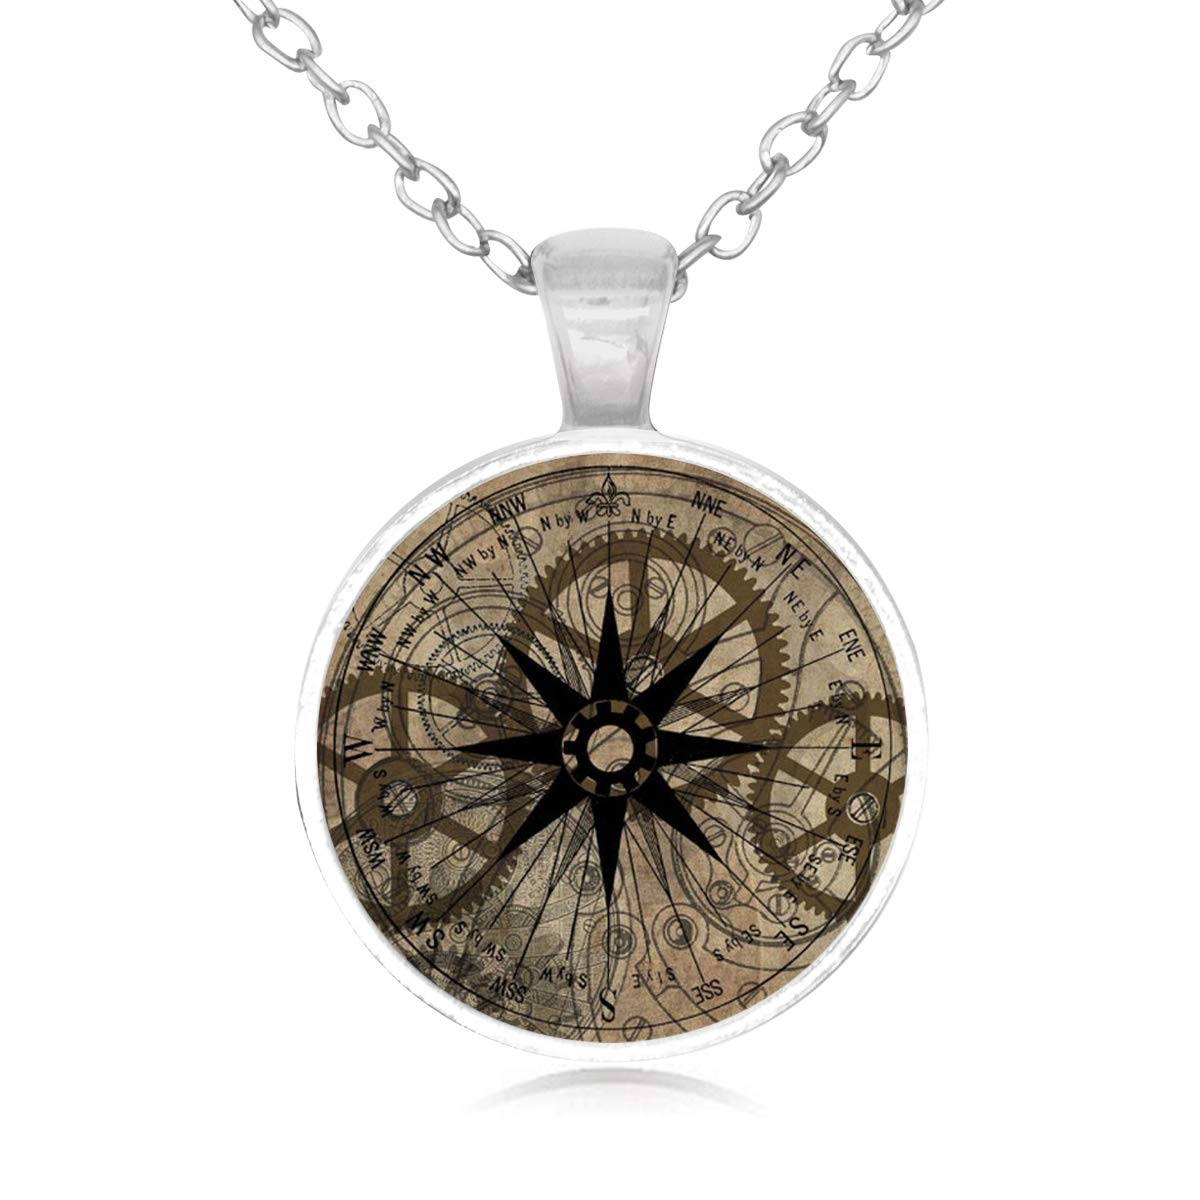 Lightrain Retro Gear on Compass Pendant Necklace Vintage Bronze Chain Statement Necklace Handmade Jewelry Gifts